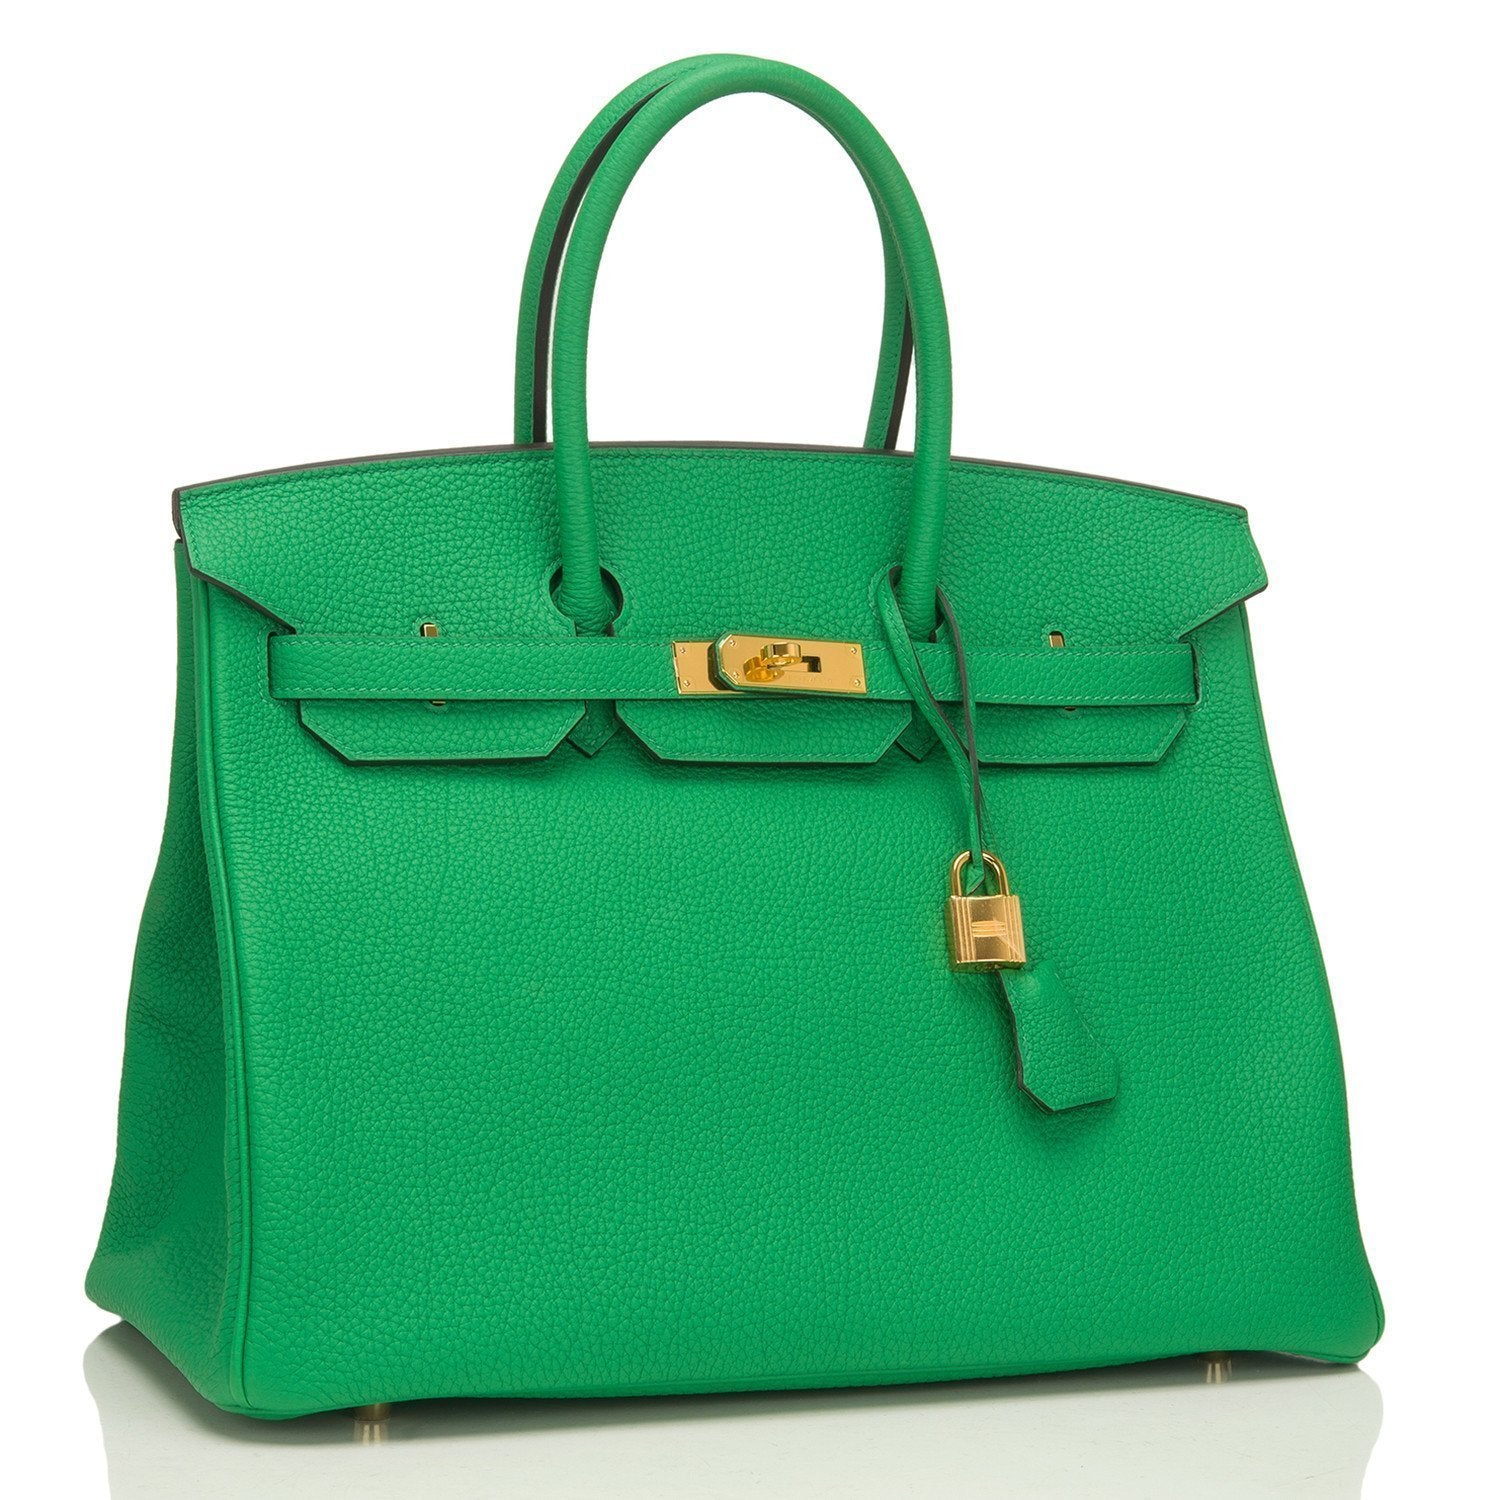 3e8f86a3000 Hermes Bamboo Togo Birkin 35cm Gold Hardware – Madison Avenue Couture